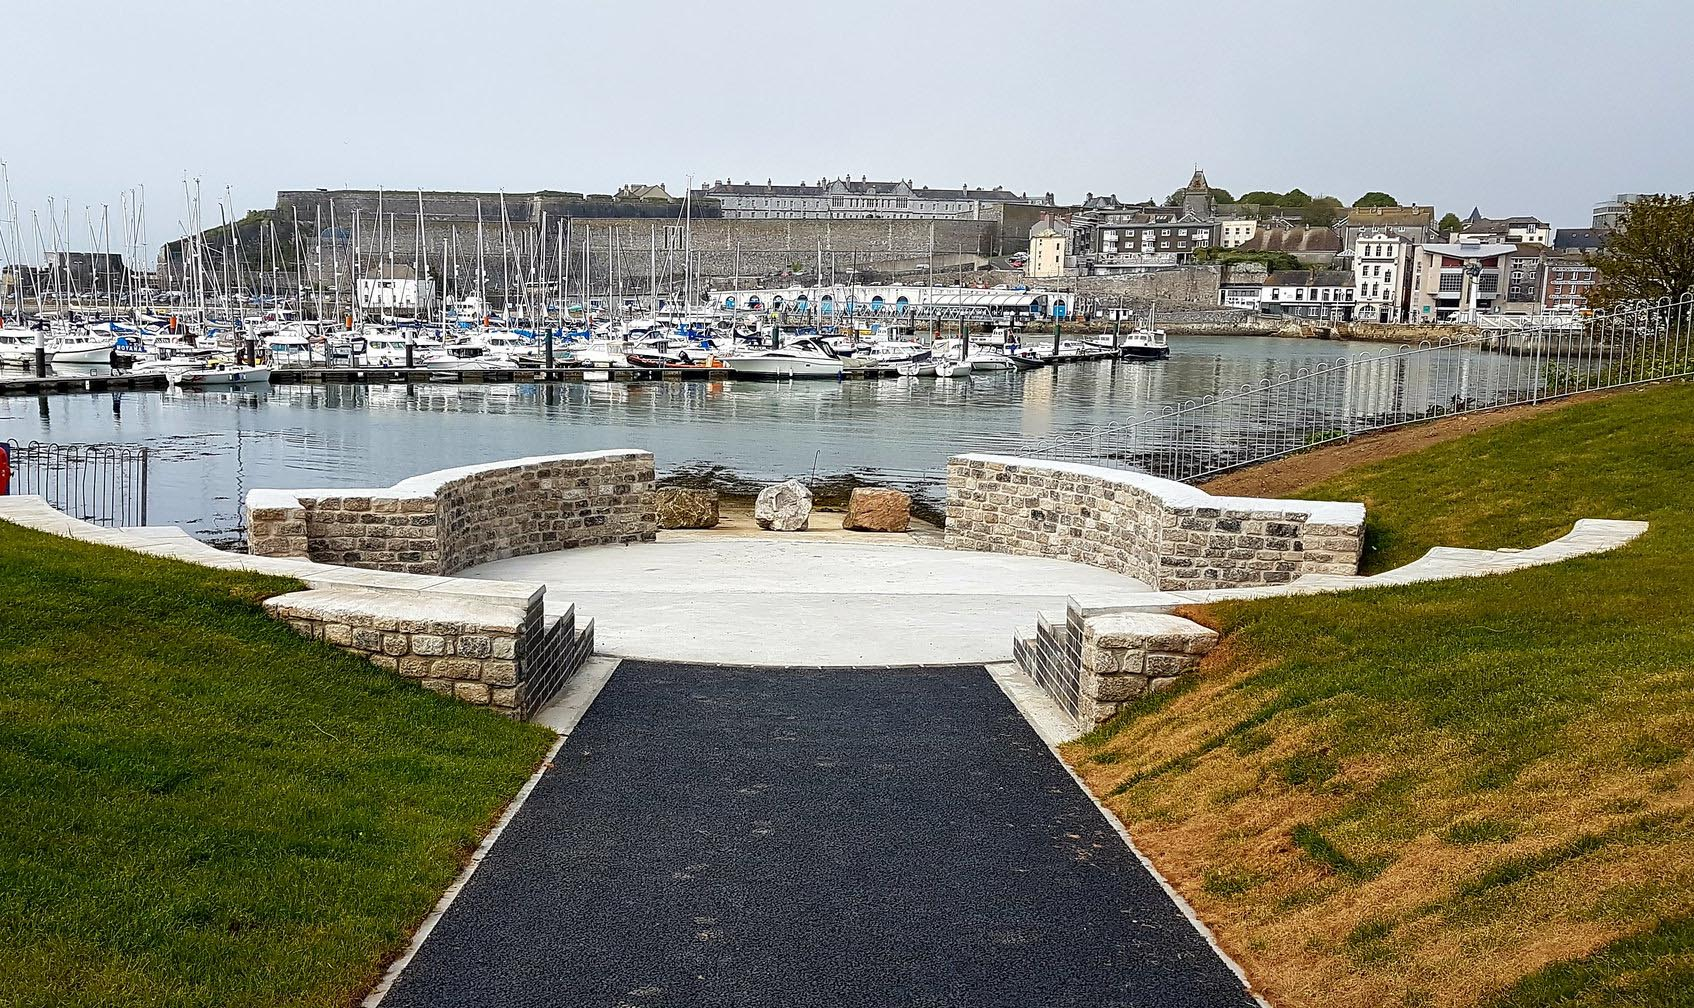 A new coastal amphitheatre in Plymouth, UK, will allow school children to spend more time by the water. Image credit - BlueHealth